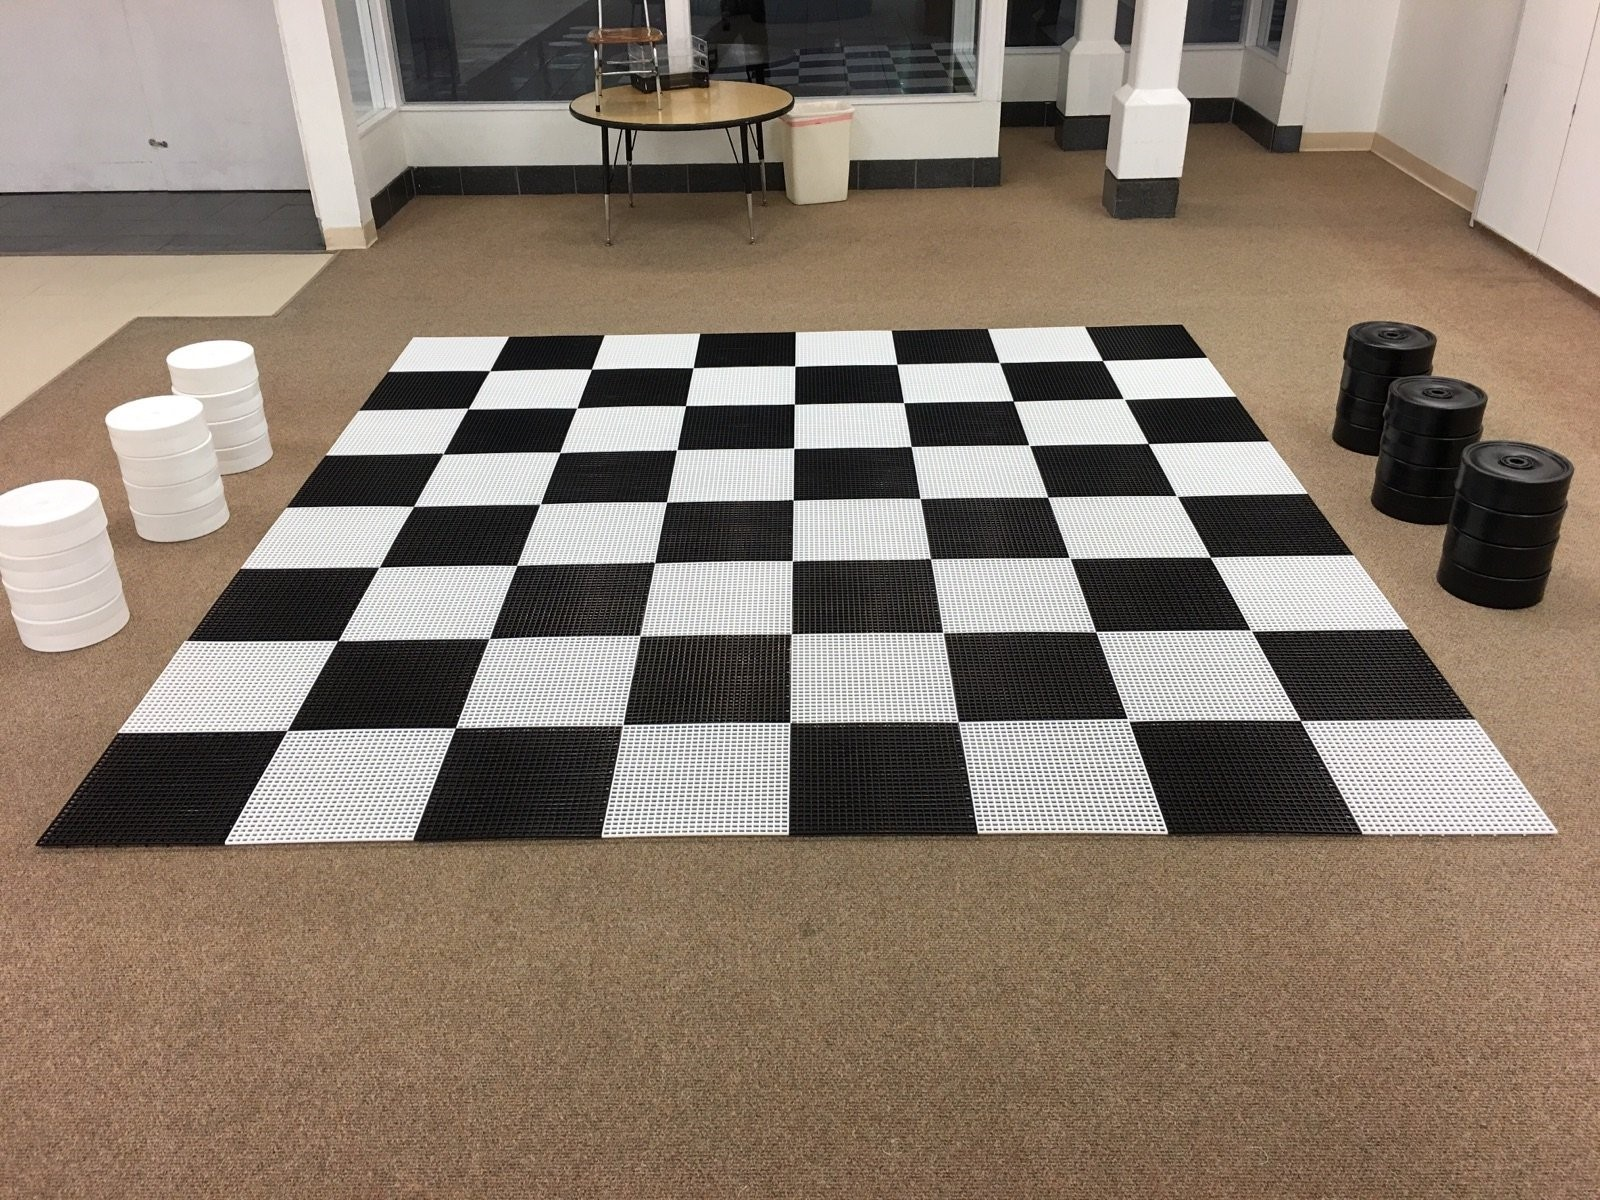 Childrens museum Checkerboard.jpg